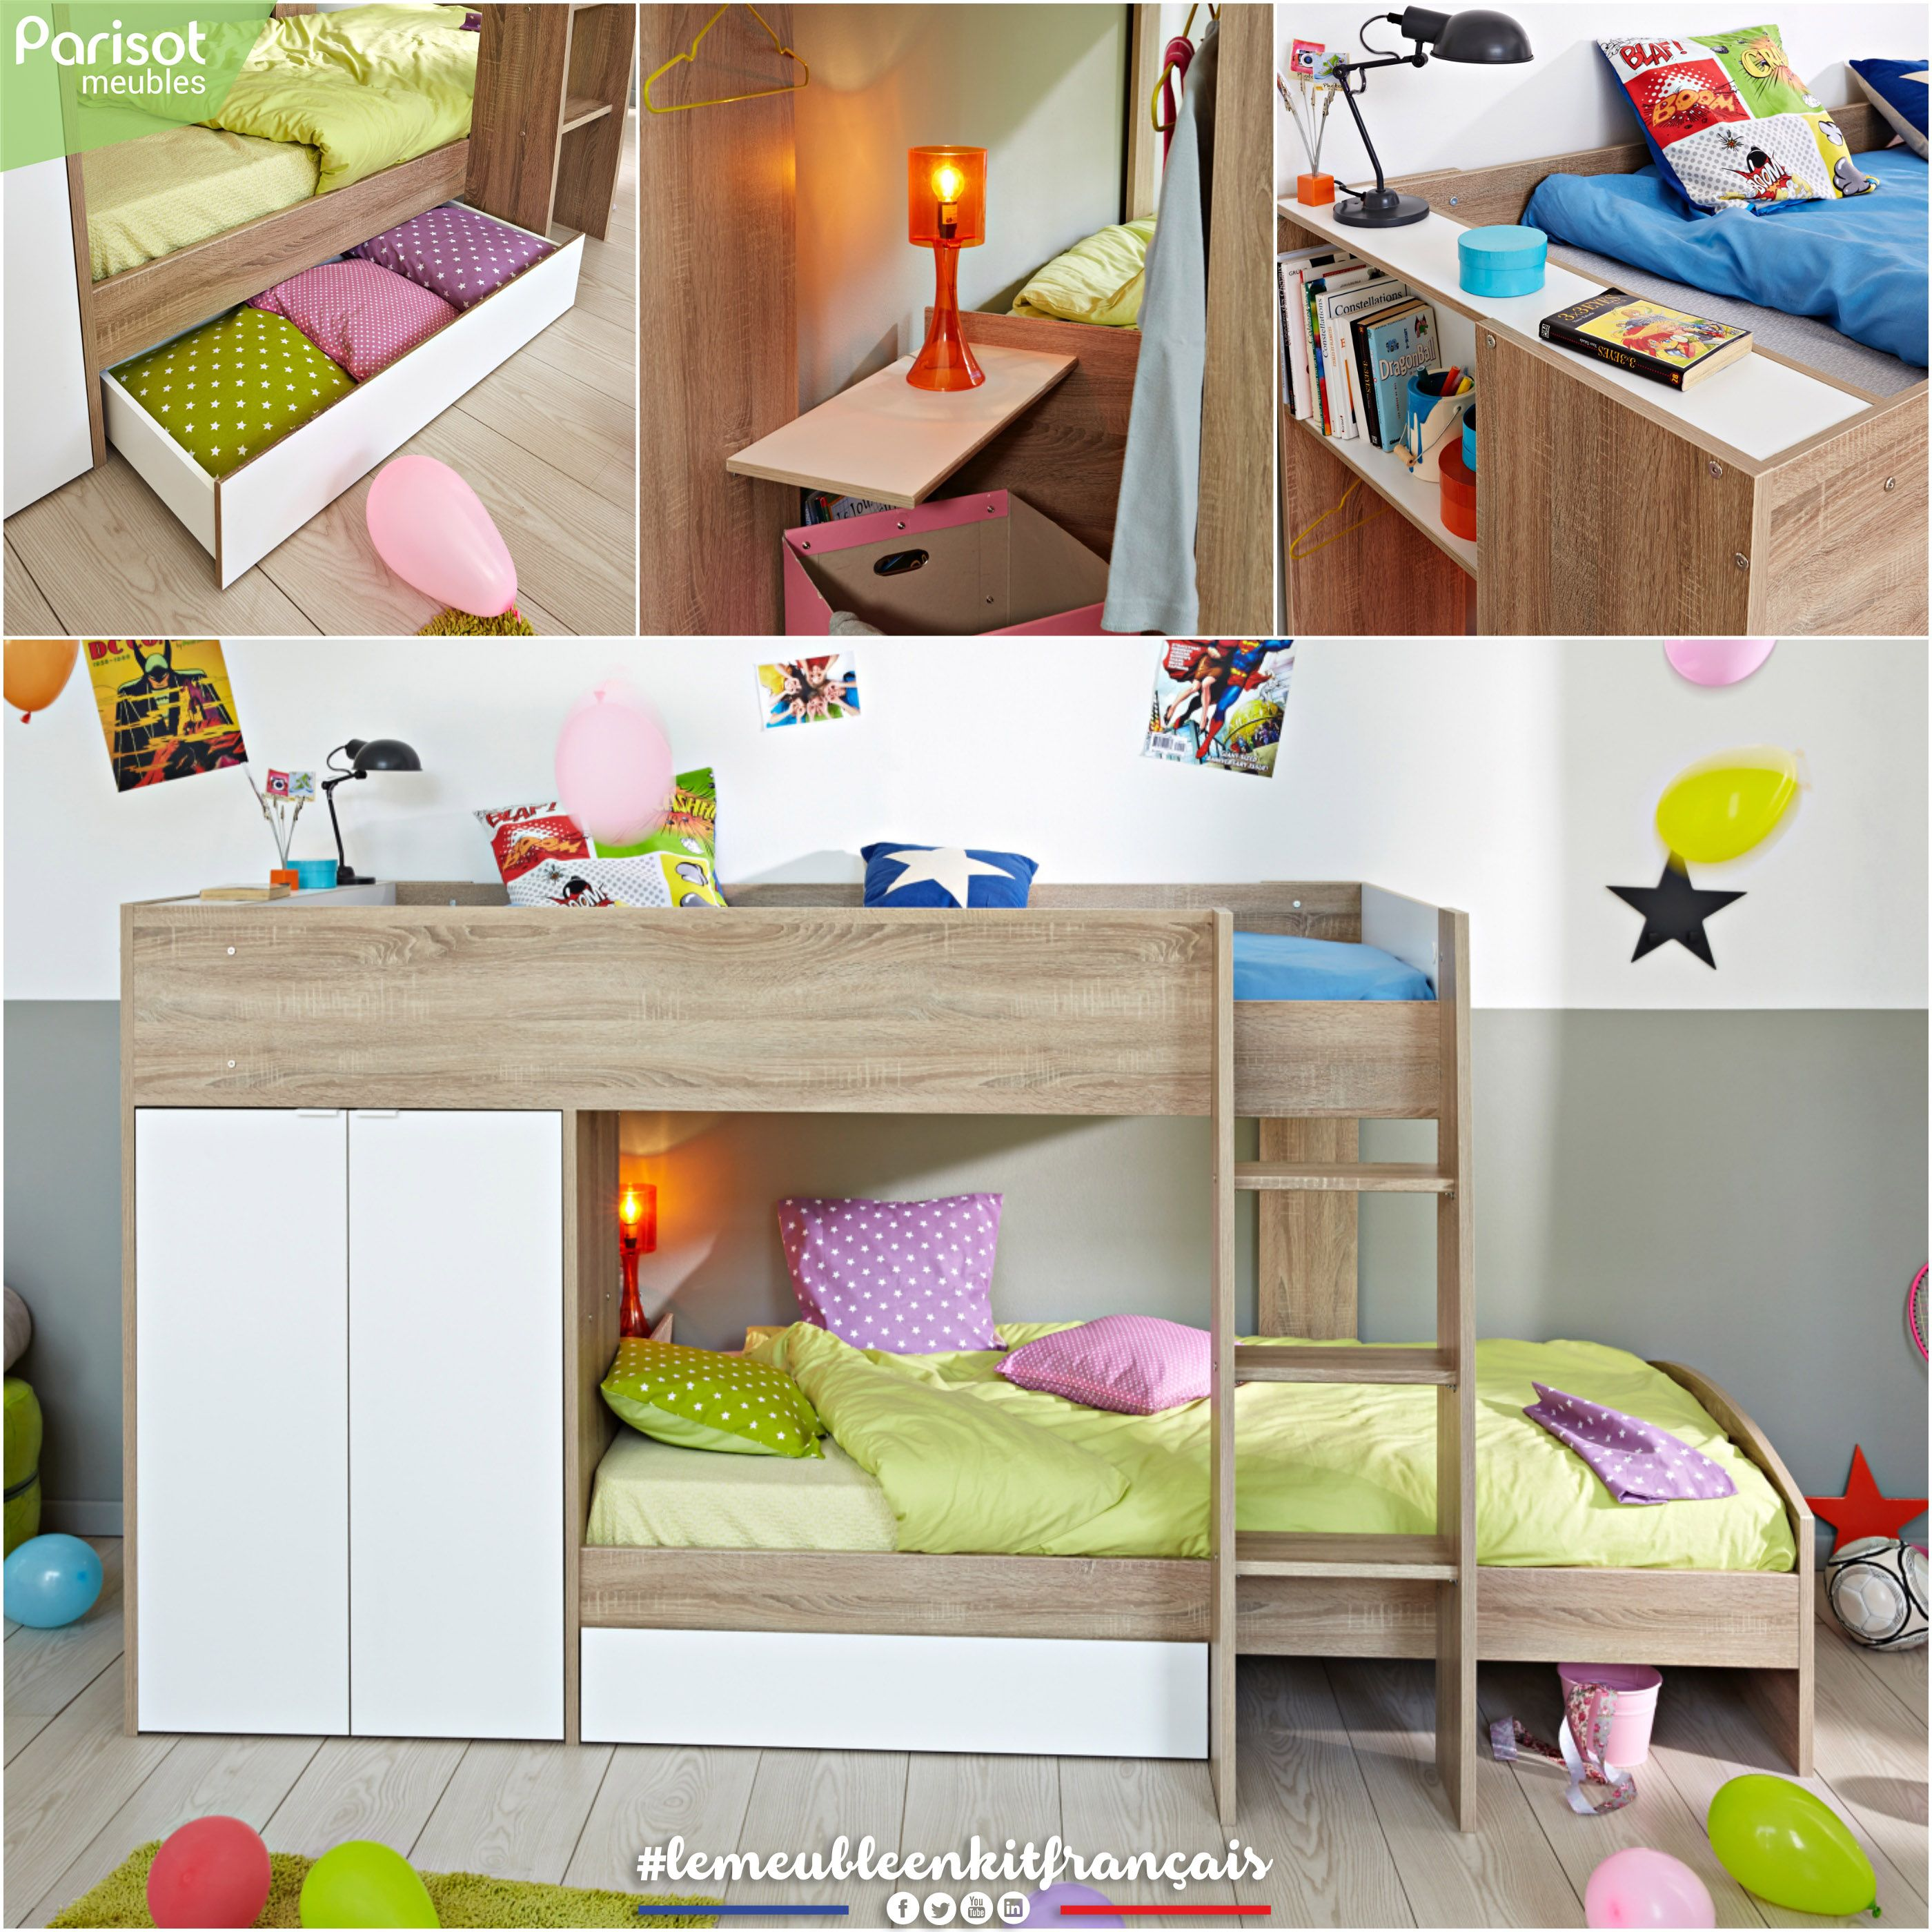 Stim By Parisot Meubles An Original Bunk Bed Which Allows To Have 2 Sleeping Spaces They Are More Distinct Ideias Para Quartos Pequenos Beliche Cama Beliche